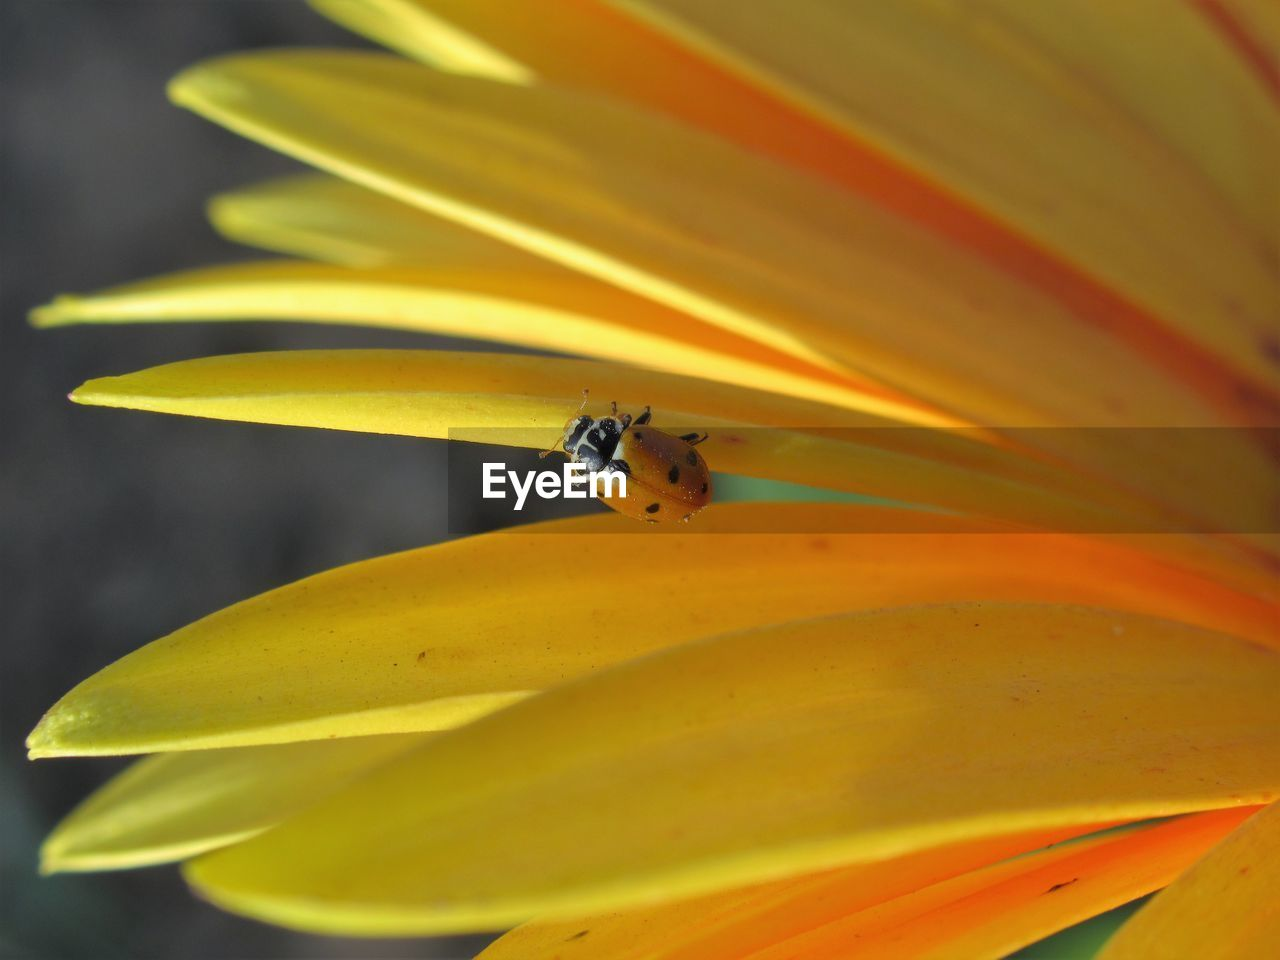 yellow, flowering plant, flower, beauty in nature, fragility, petal, insect, vulnerability, invertebrate, flower head, close-up, one animal, plant, freshness, animal themes, pollen, growth, animal, inflorescence, animal wildlife, no people, outdoors, pollination